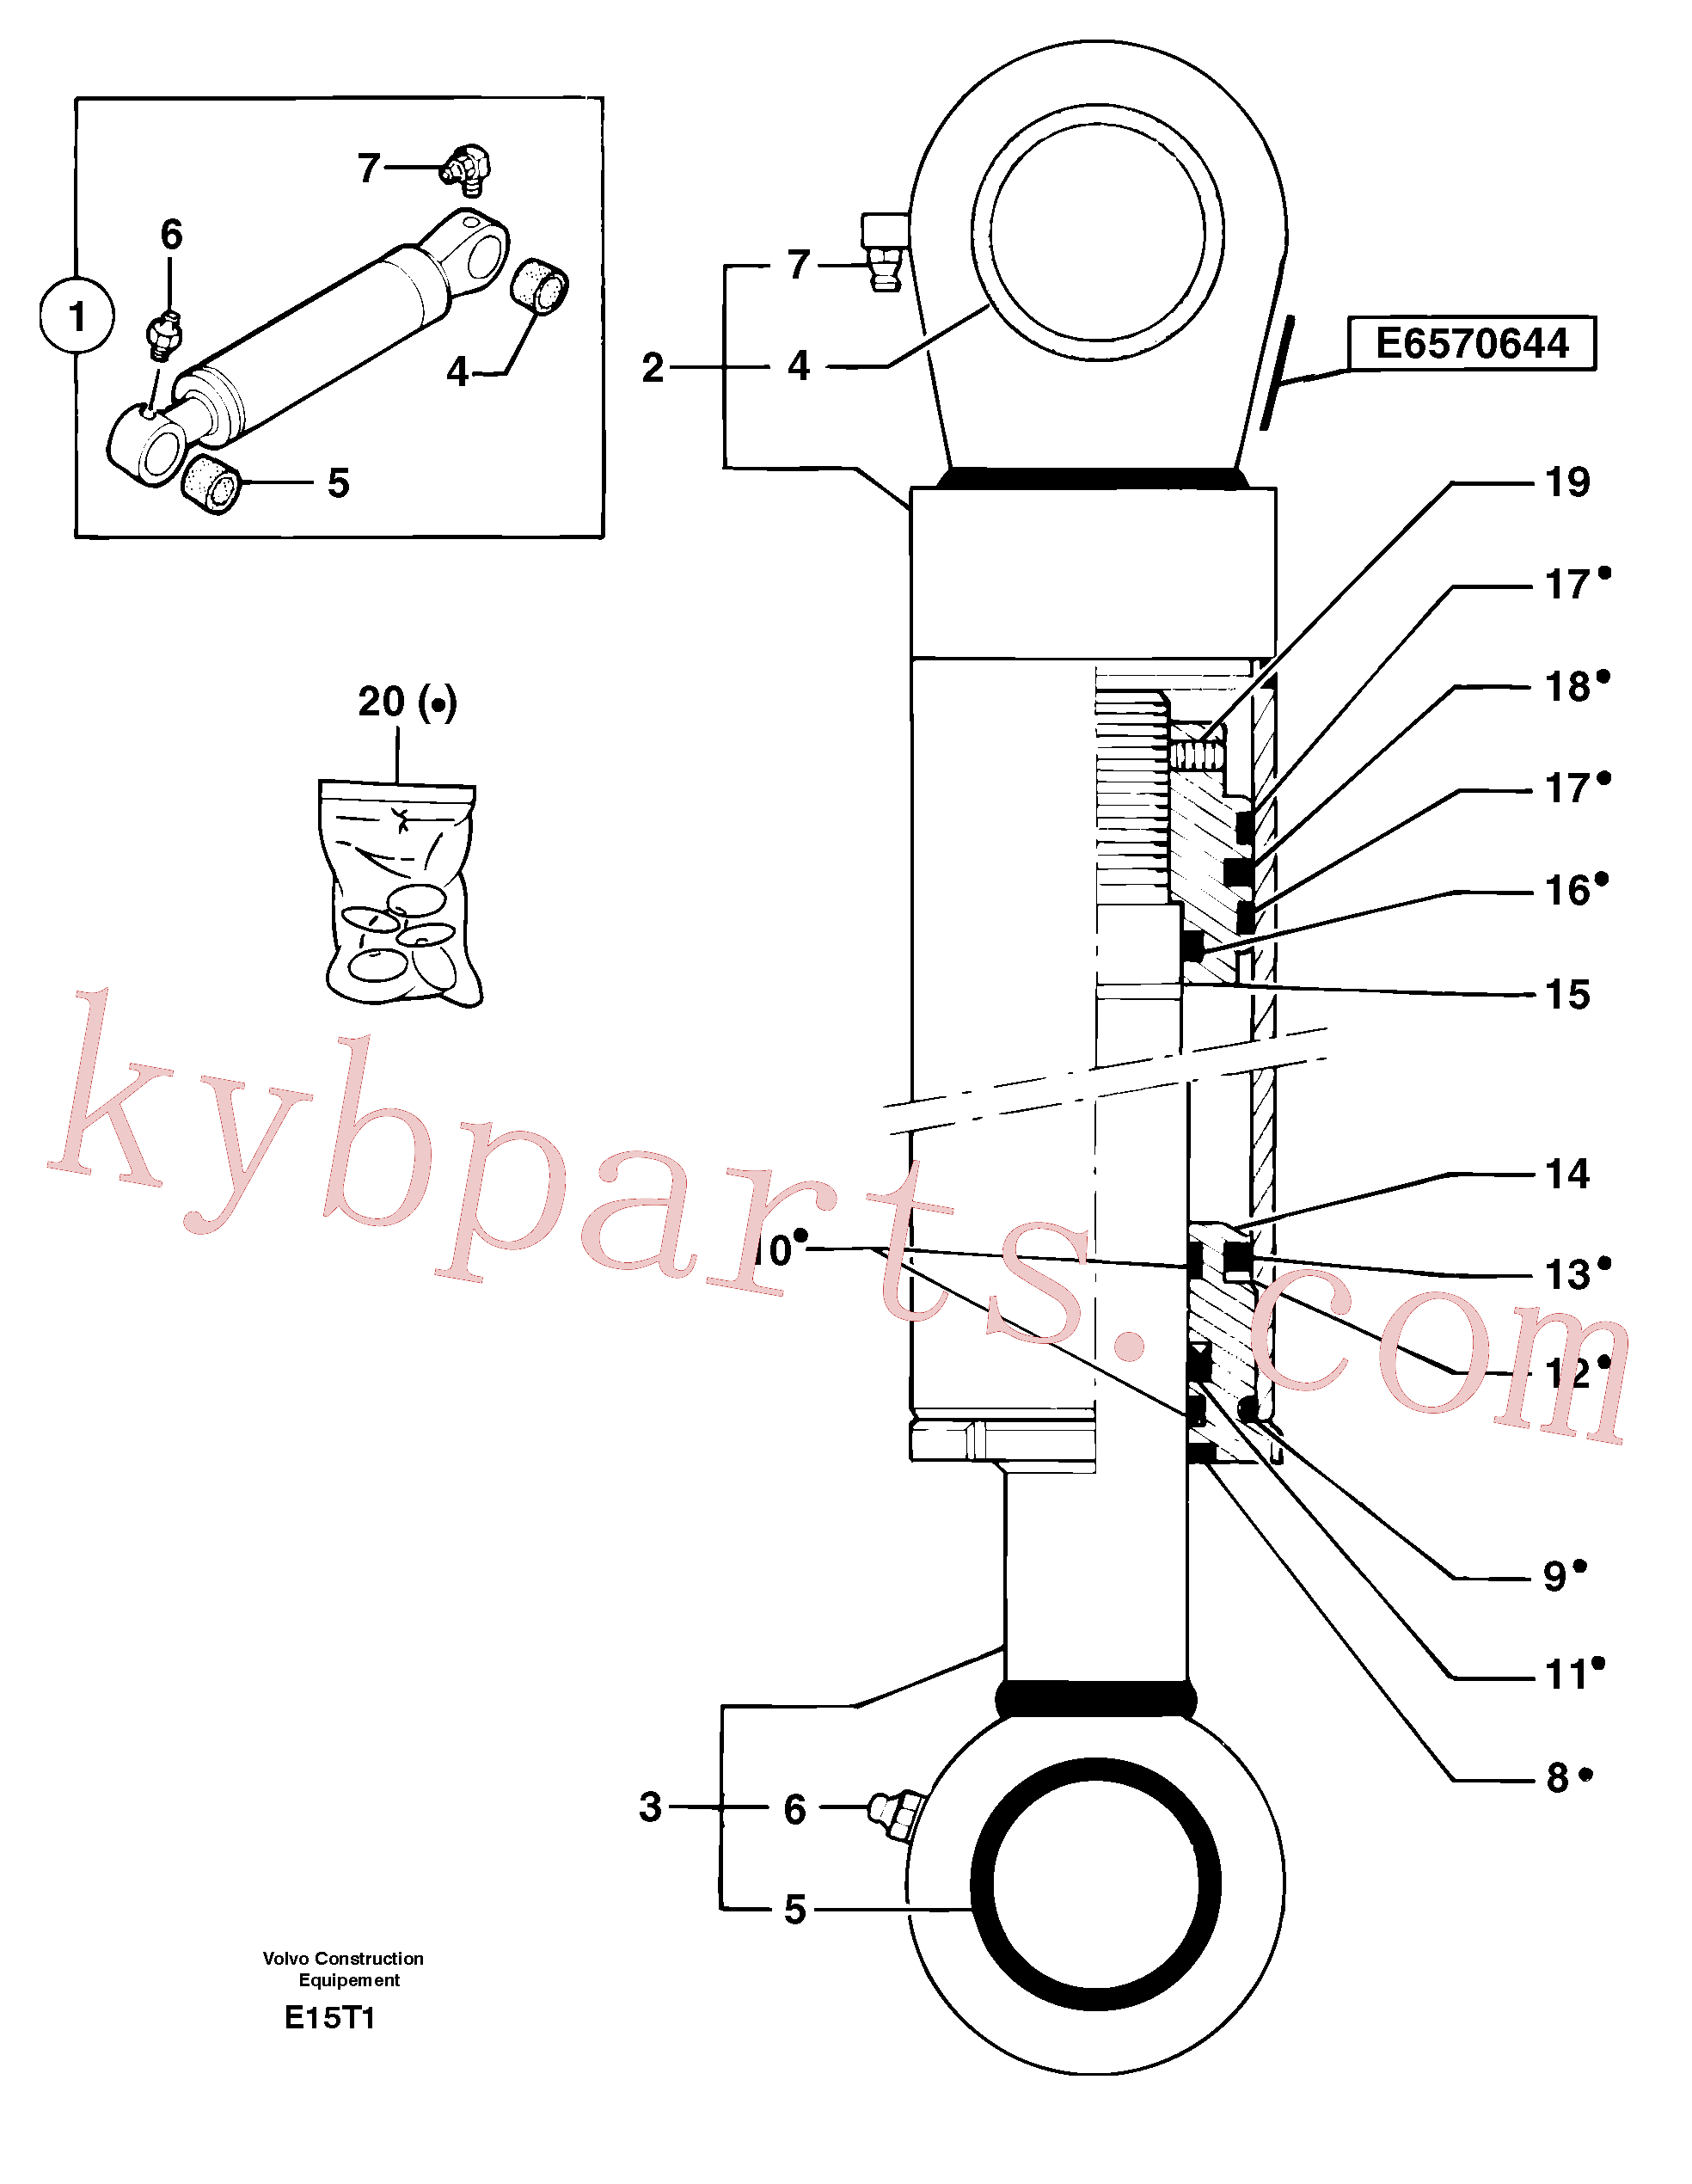 PJ5670644 for Volvo Bucket cylinder(E15T1 assembly)